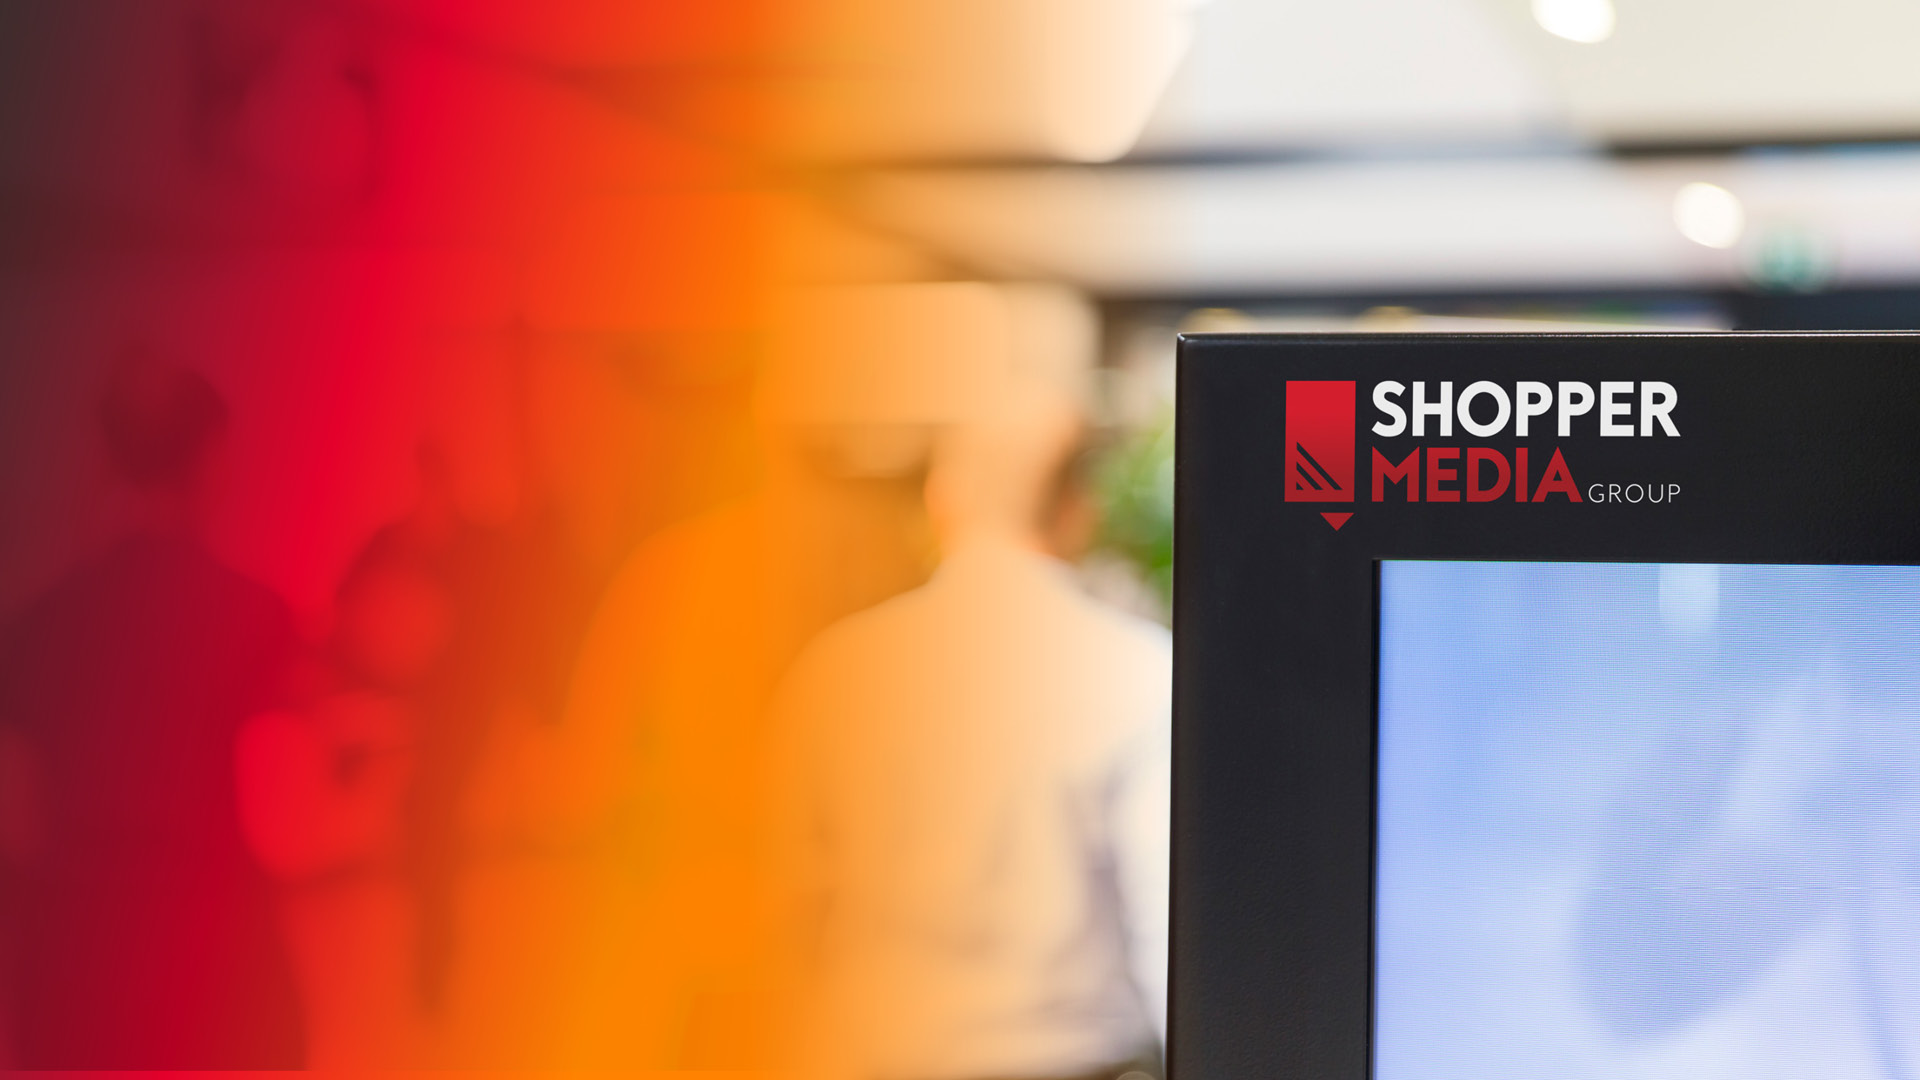 Shopper Media Group, Retailored, creative, design, graphic design